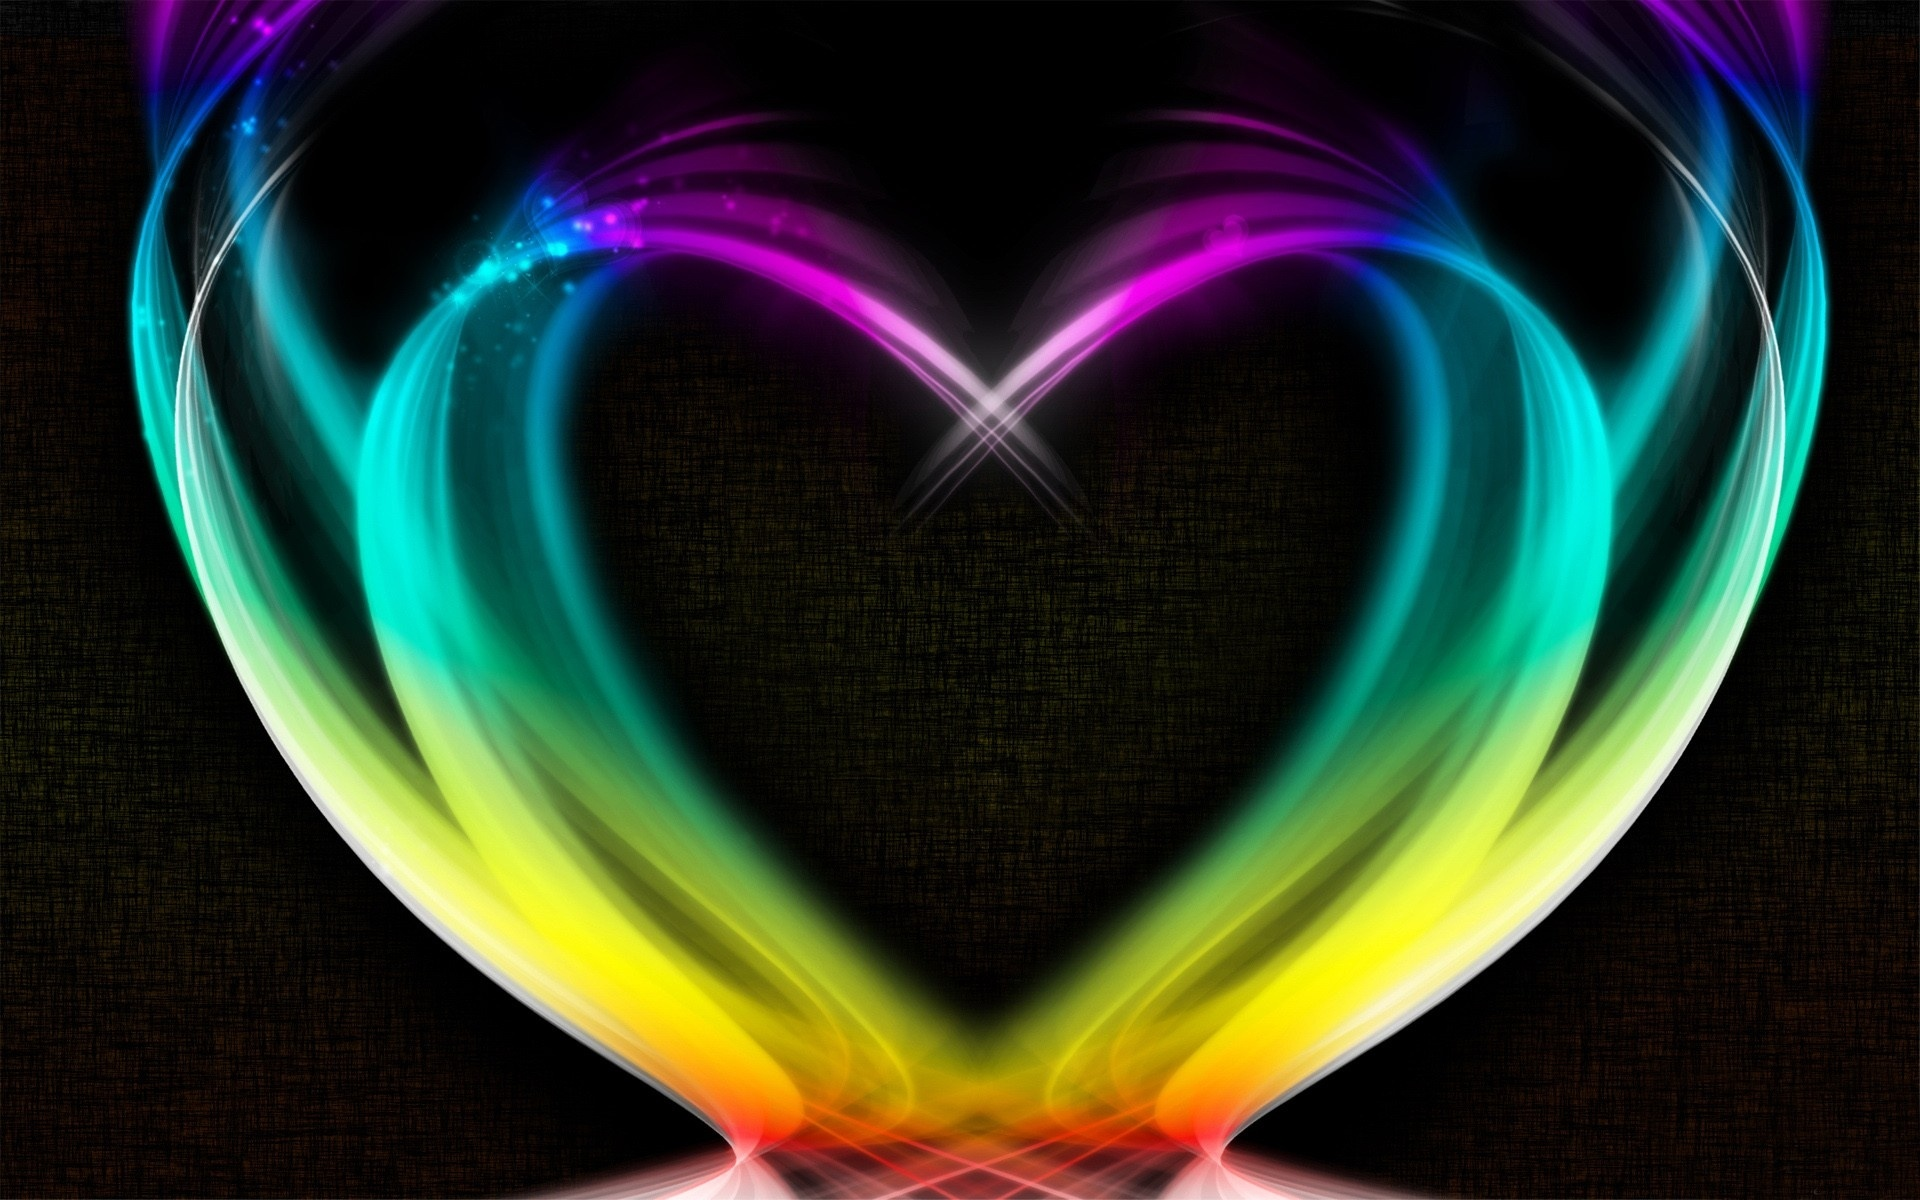 Wallpaper Abstract Love Heart Colorful Smoke Creative 1920x1200 Hd